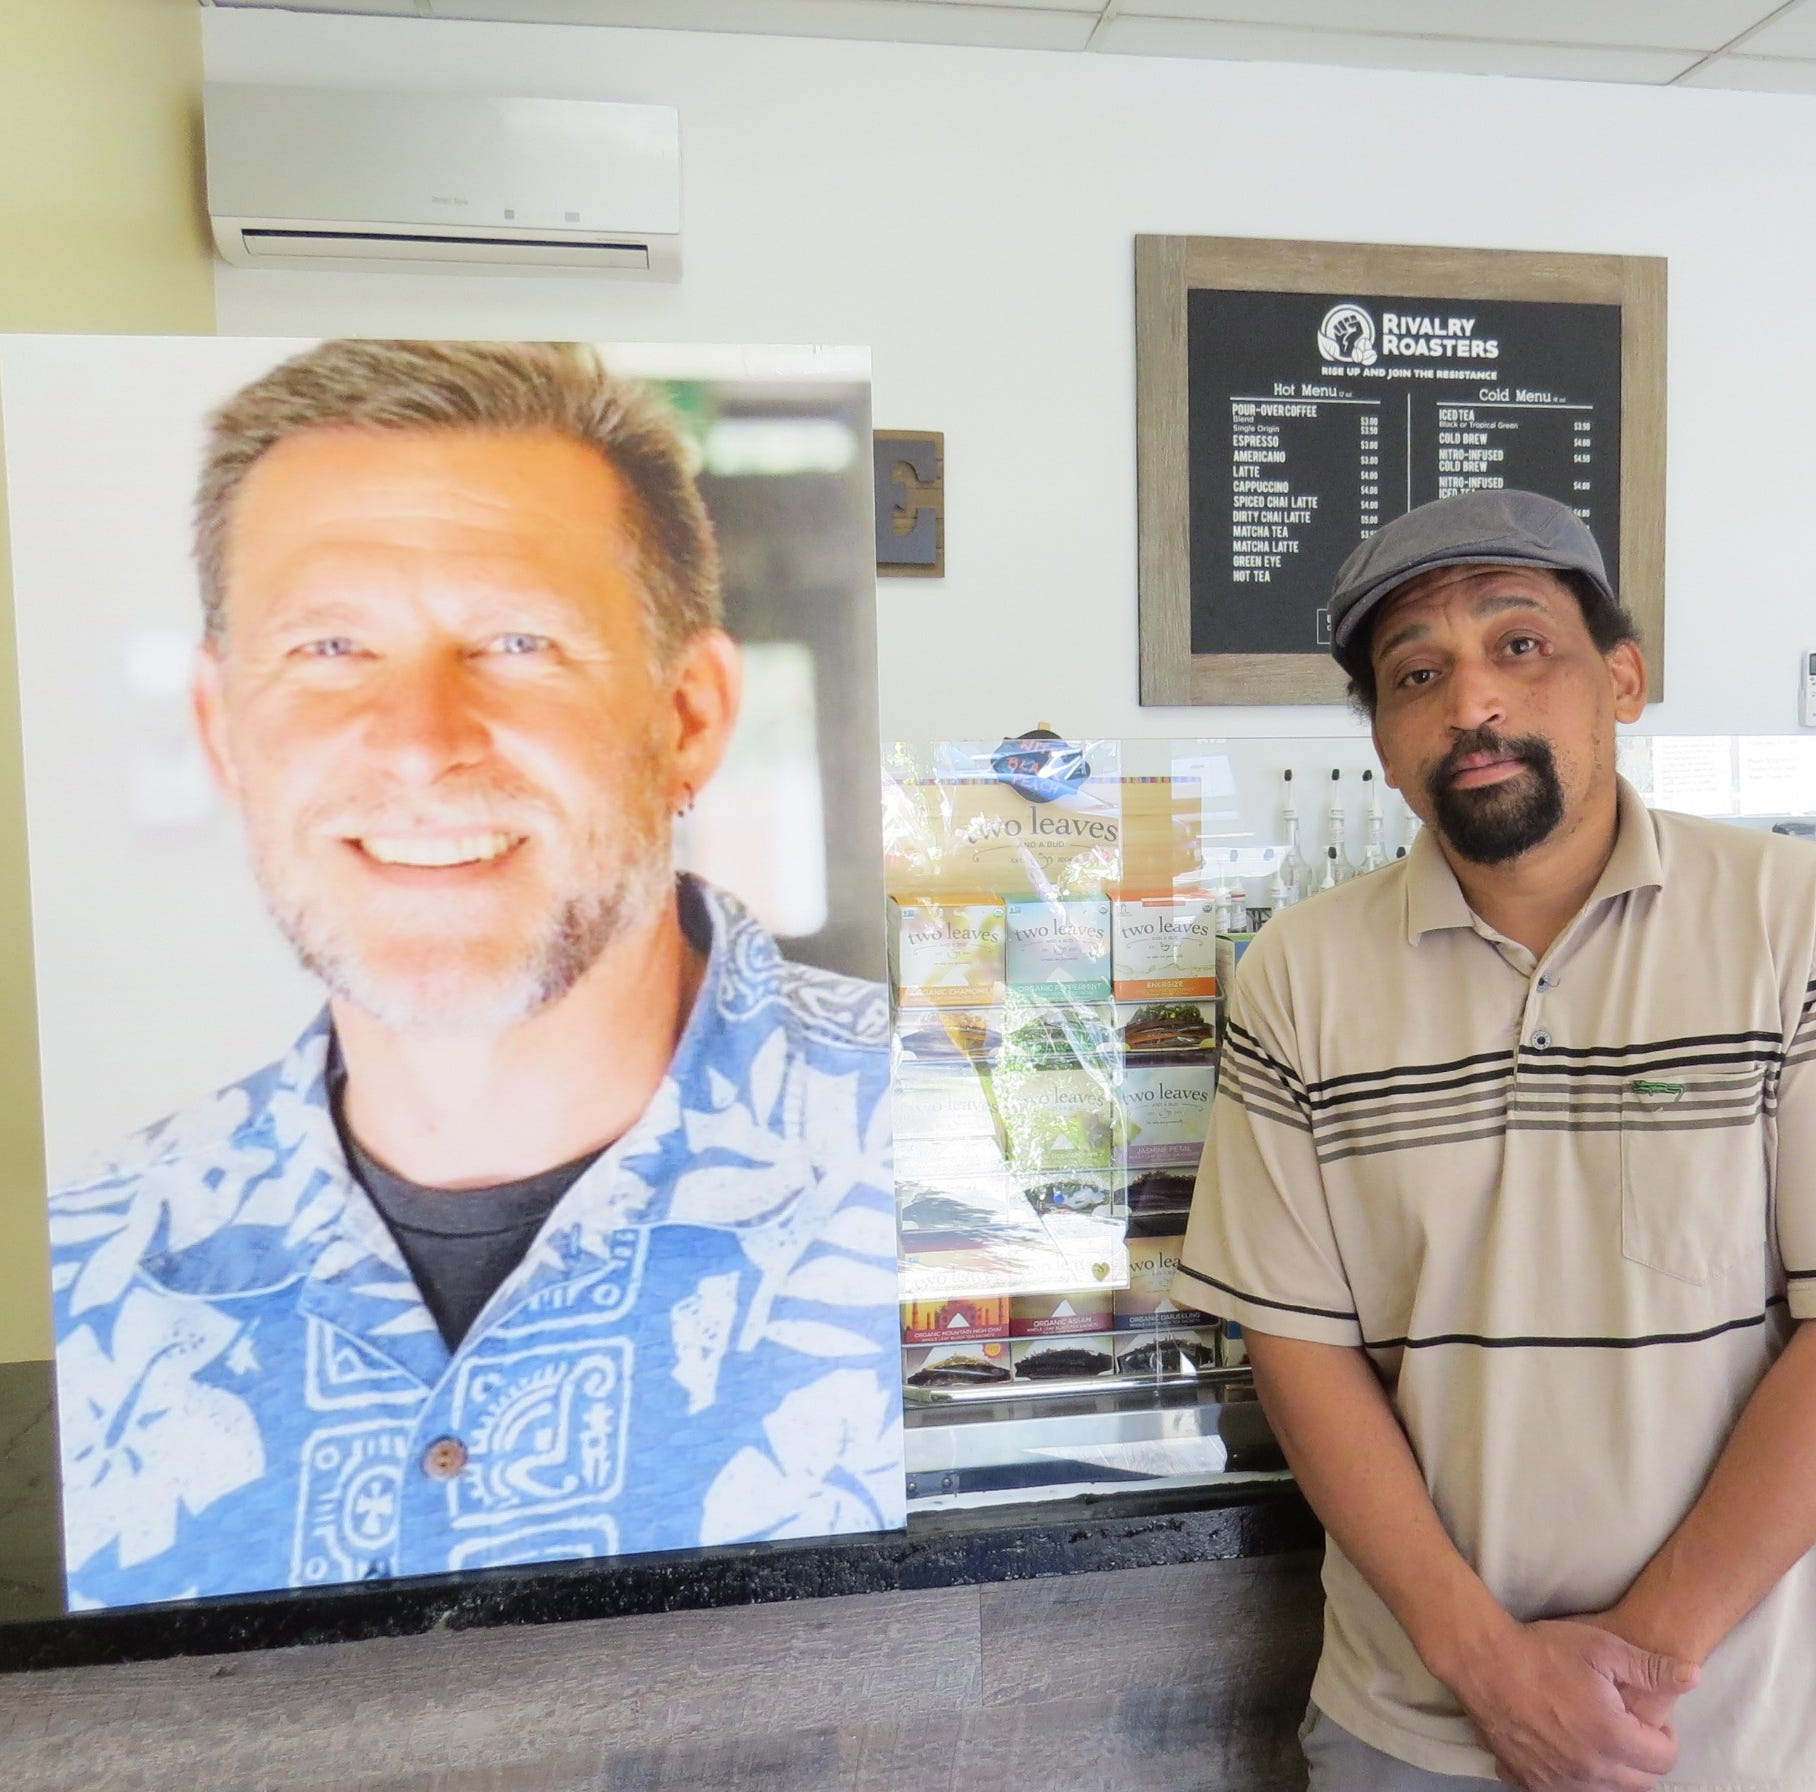 """""""Sean is a good numbers guy. I'm more of a creative type,"""" says Chris Curtis, who partnered with Borderline shooting victim Sean Adler last year to open Rivalry Roasters in Simi Valley. The business is continuing its wholesale operations. Curtis isn't sure when, or if, its retail space will reopen to the public."""